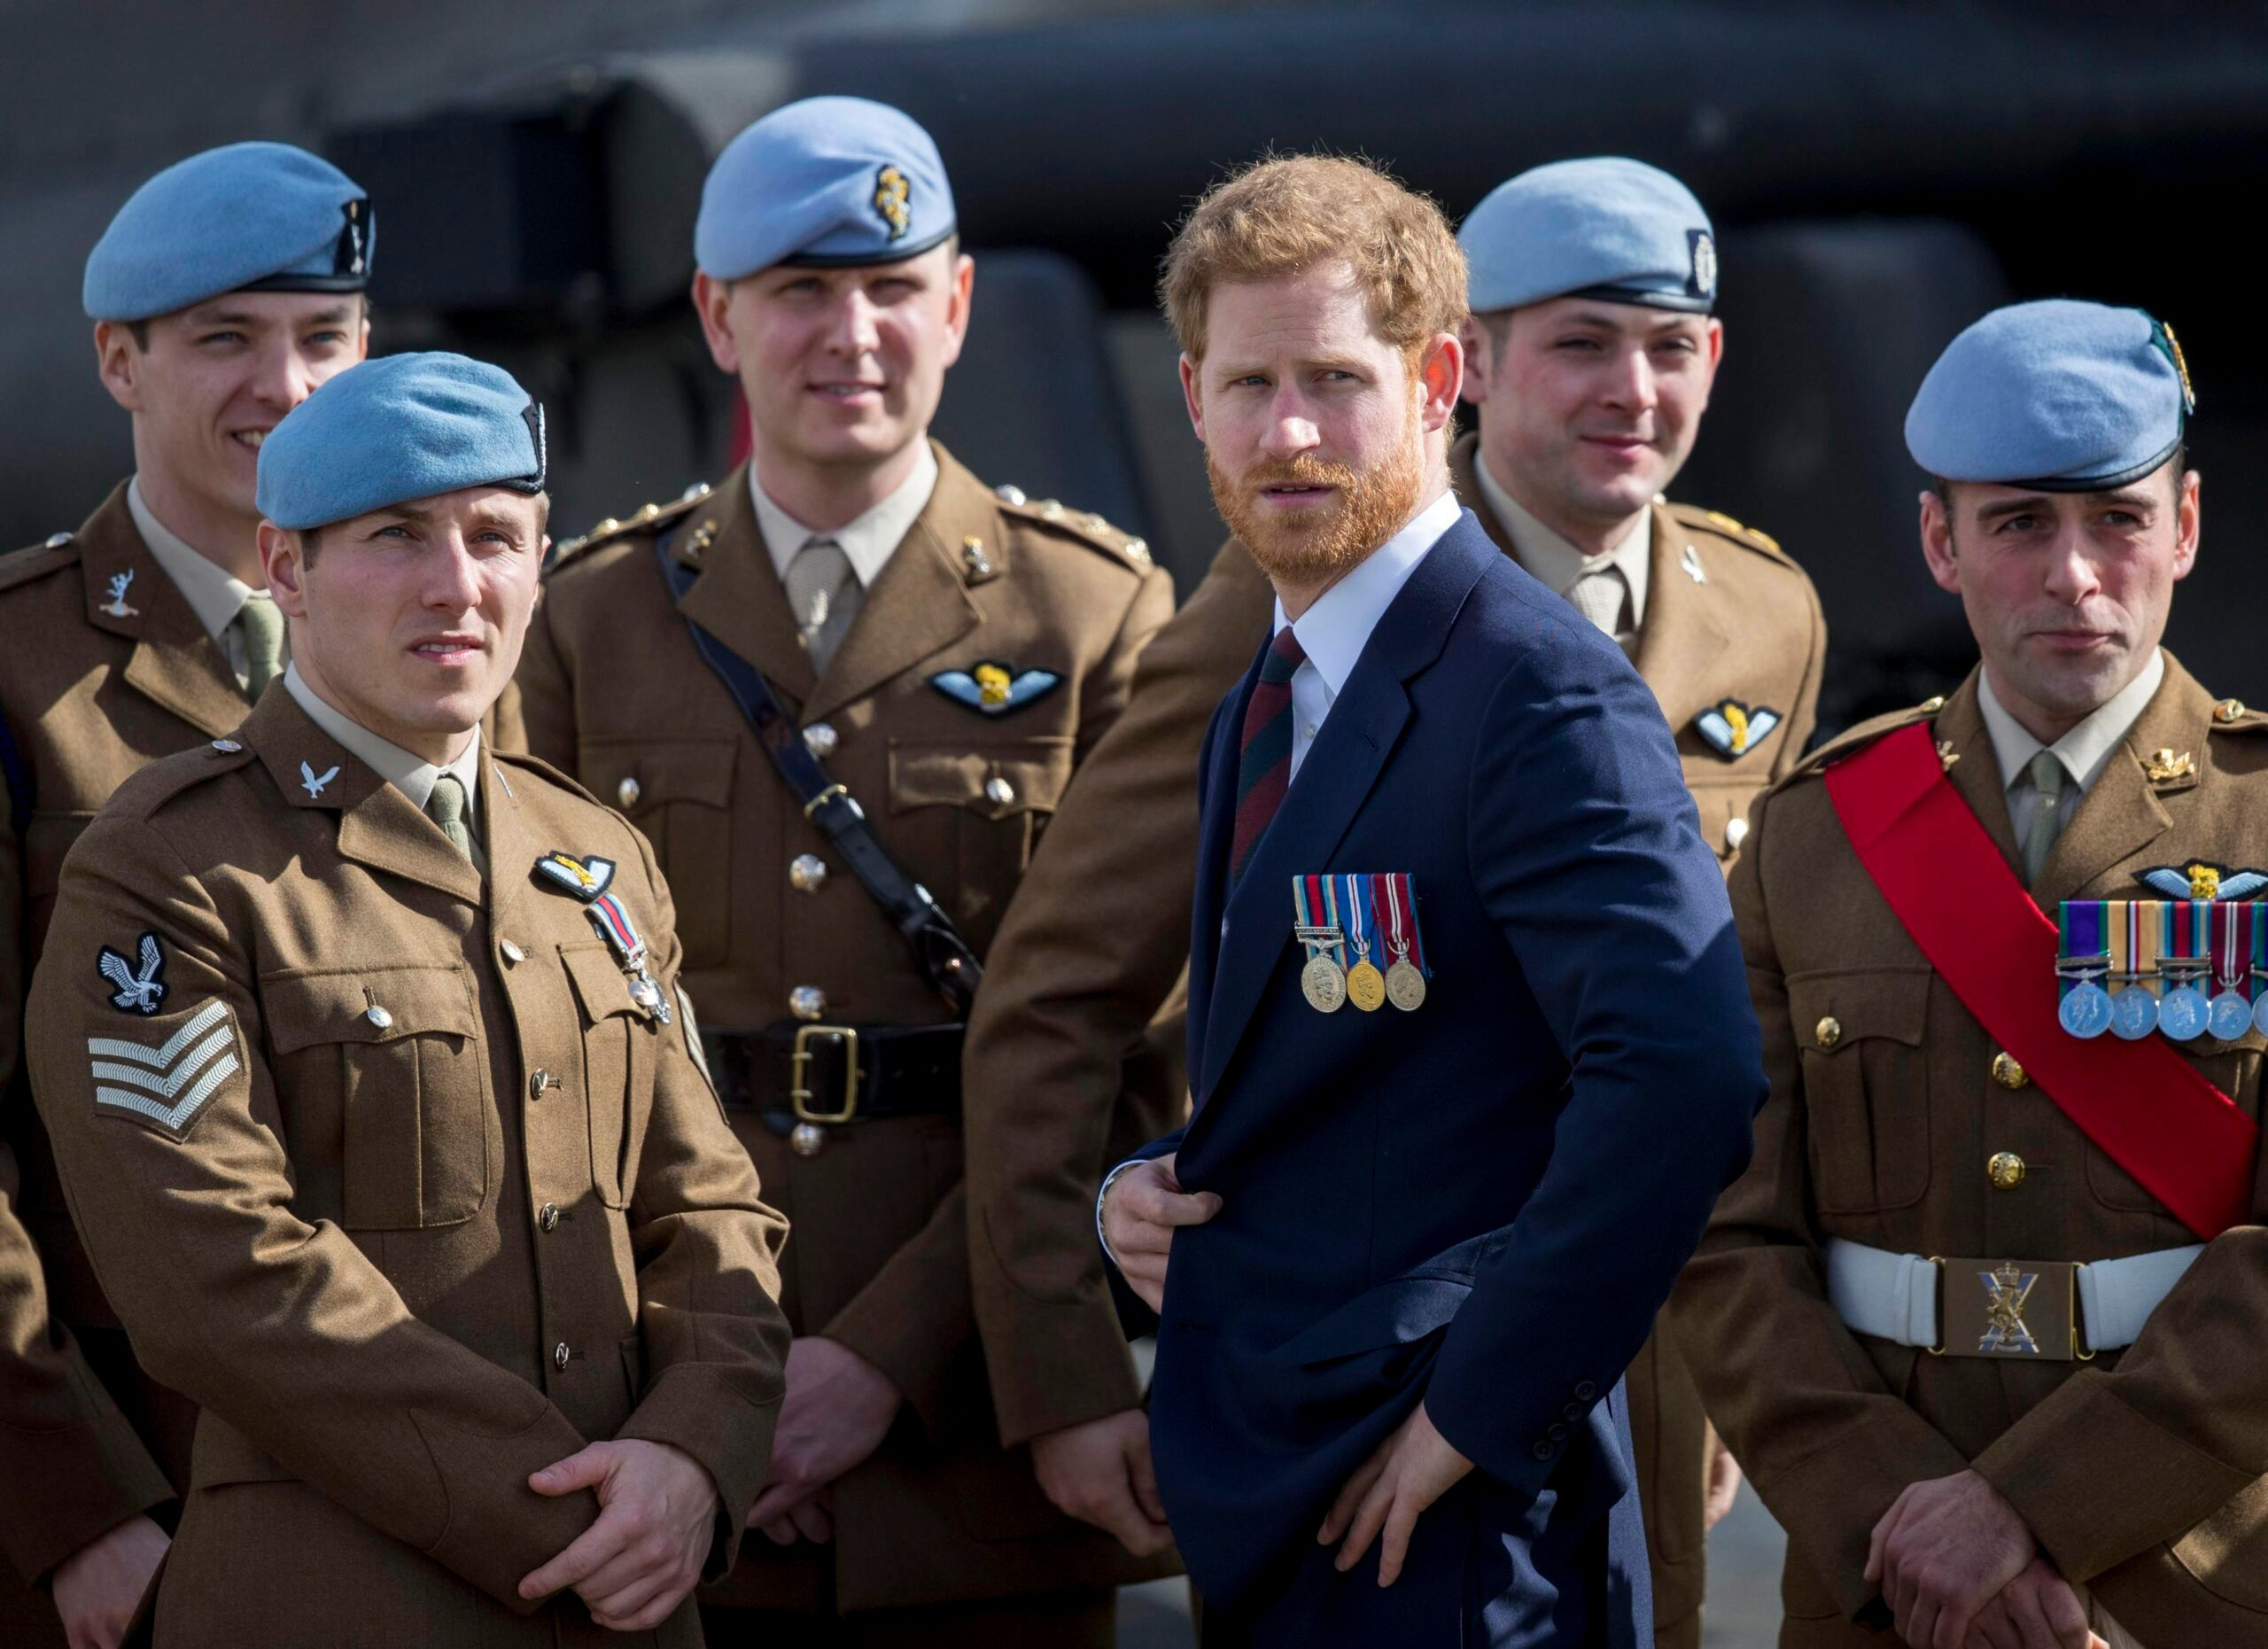 Prince Harry Wins Damages Over False Reports That He 'Turned His Back' On The Mi